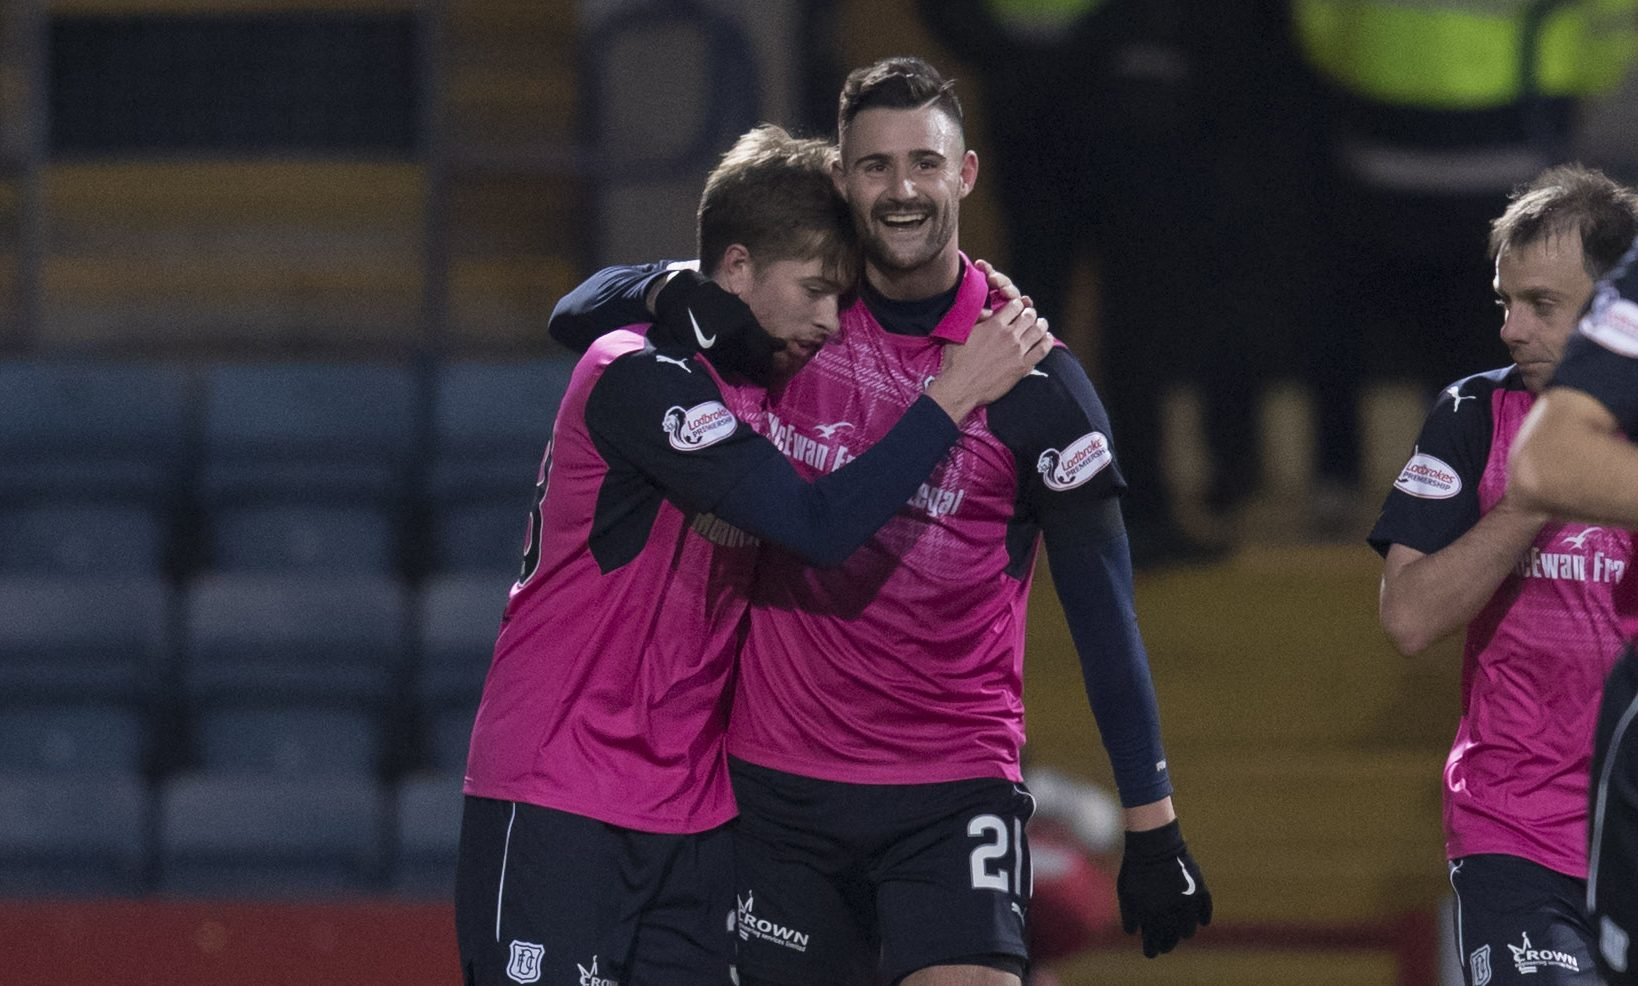 Marcus Haber thanks Craig Wighton for setting up his goal towards the end of the game.